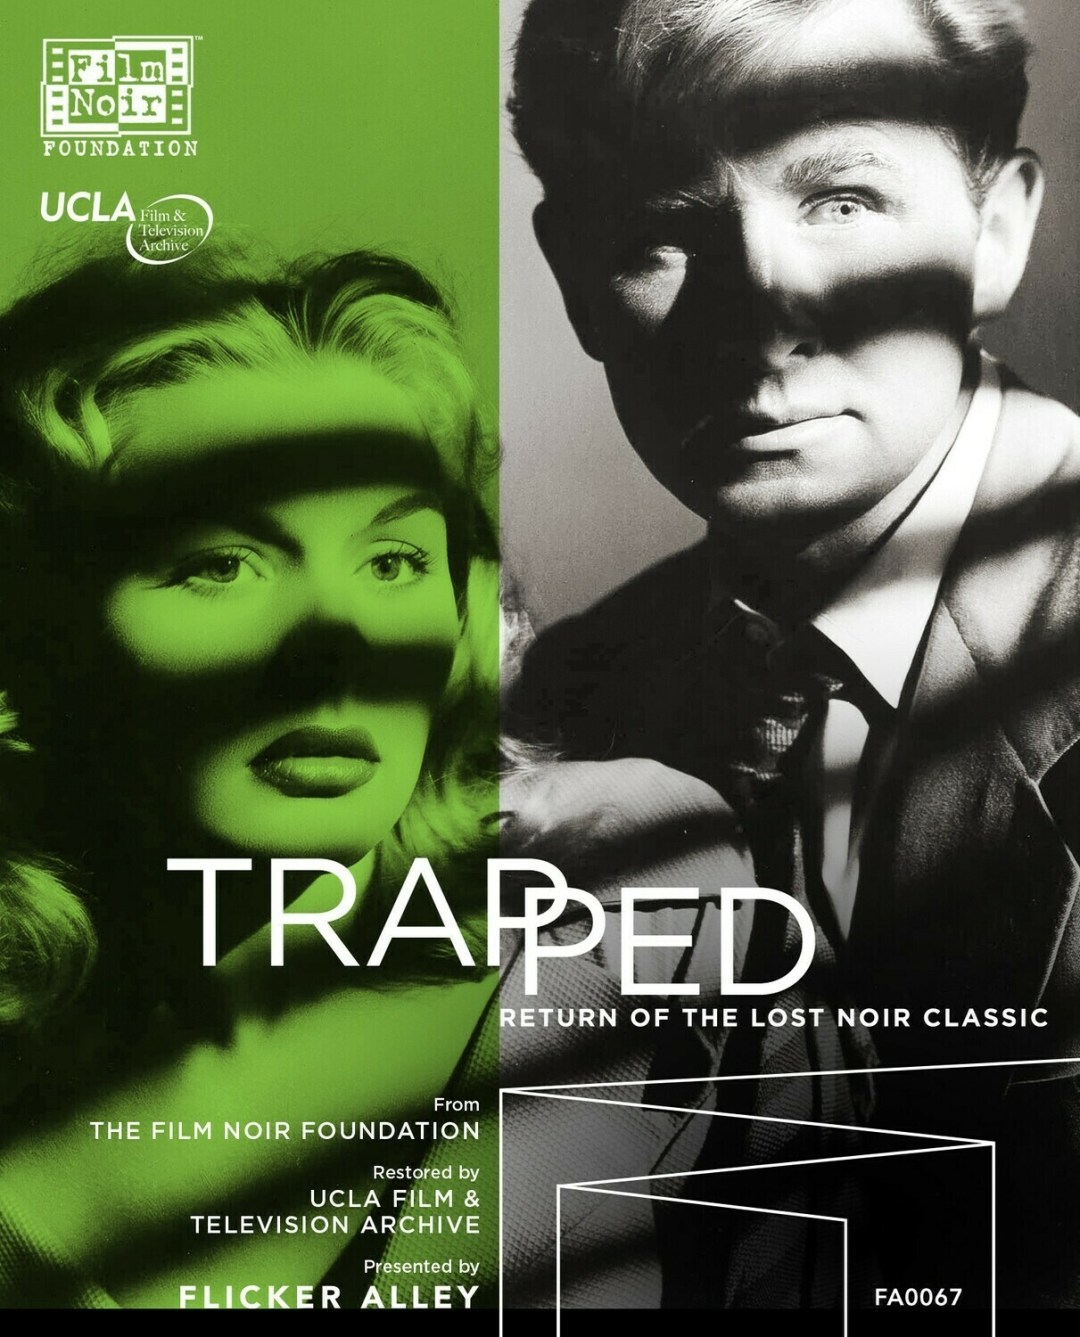 TRAPPED (1949) Fully restored on Blu-ray and DVD!